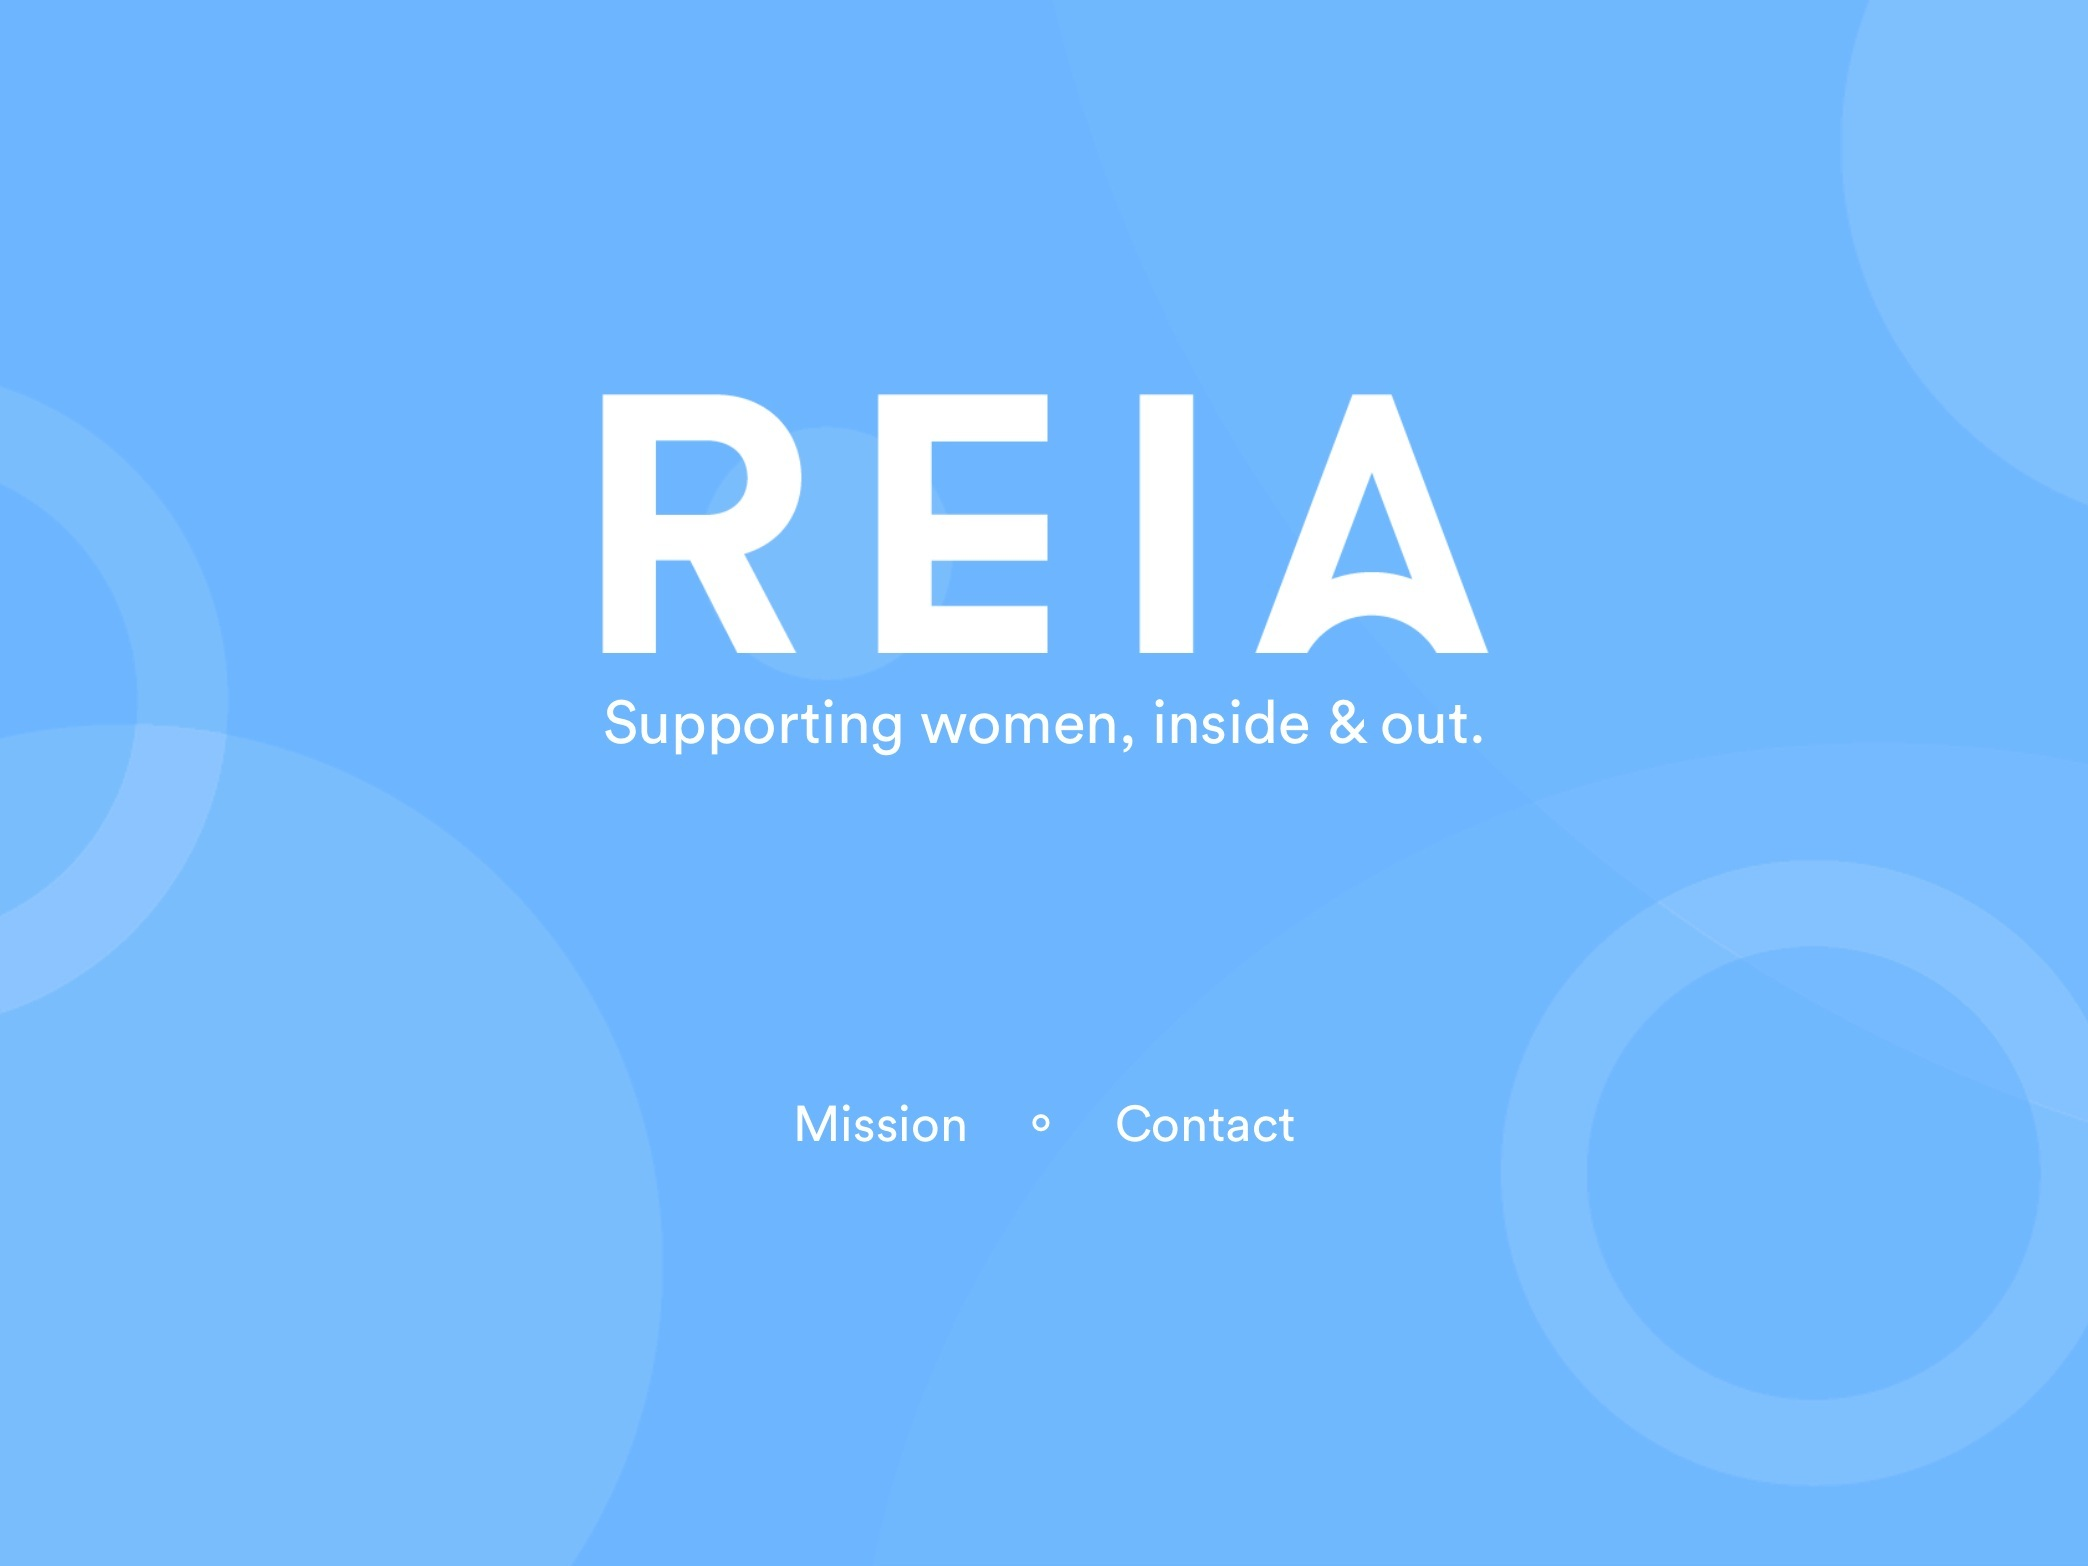 REIA - Founded by Kaitlin Maier, Reia aims to improve women's independence and access to adequate care options for pelvic organ prolapse. Our pessary's collapsible and self-manageable design reduces the need for costly and time intensive maintenance visits, provides treatment options to those who do not have regular access to medical care, and addresses lifestyle impairments and complications associated with persistent pessary wear.Learn More